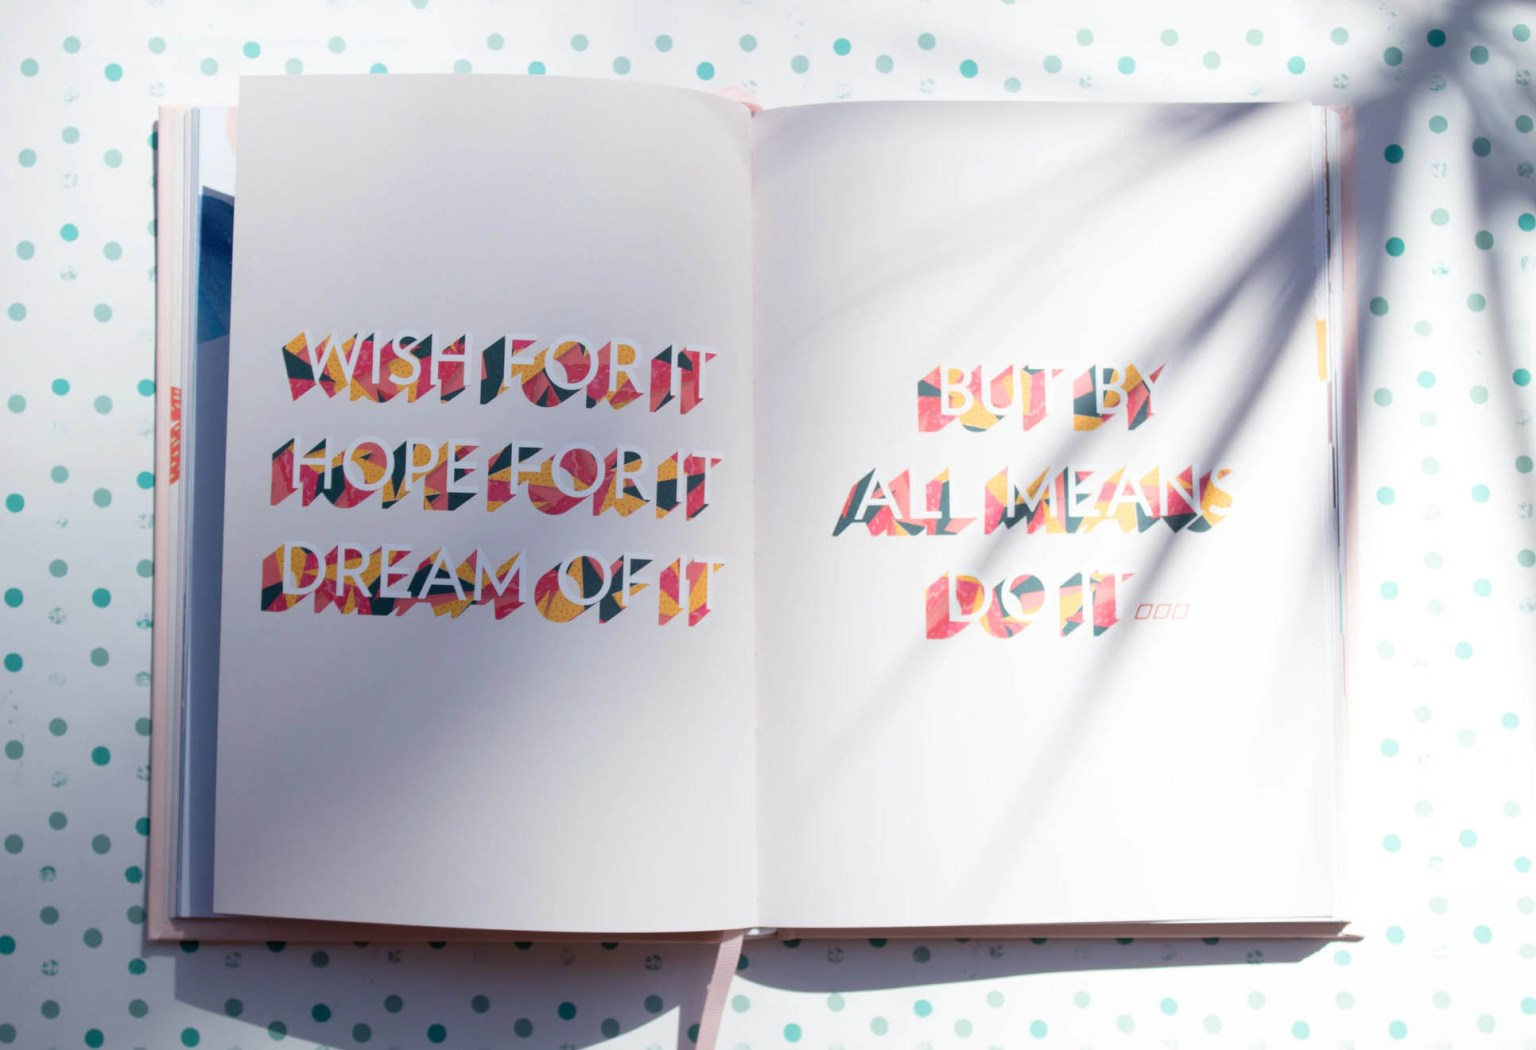 Journal with the words - wish for it, hope for it, dream of it but by all means do it